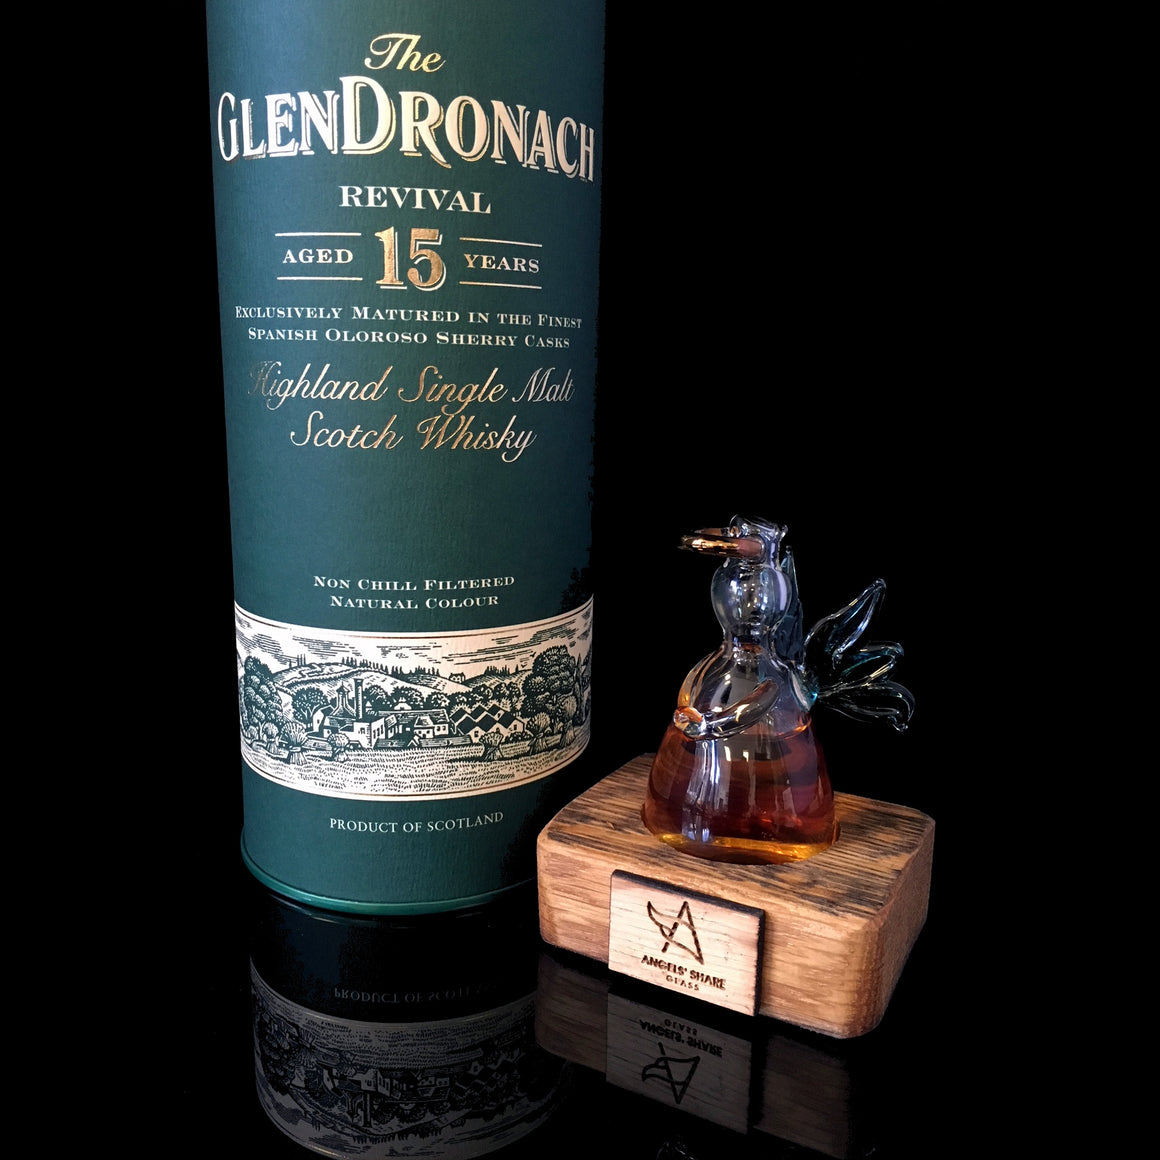 The Angels' Share of Glendronach Revival 15 Year Old - Limited Edition